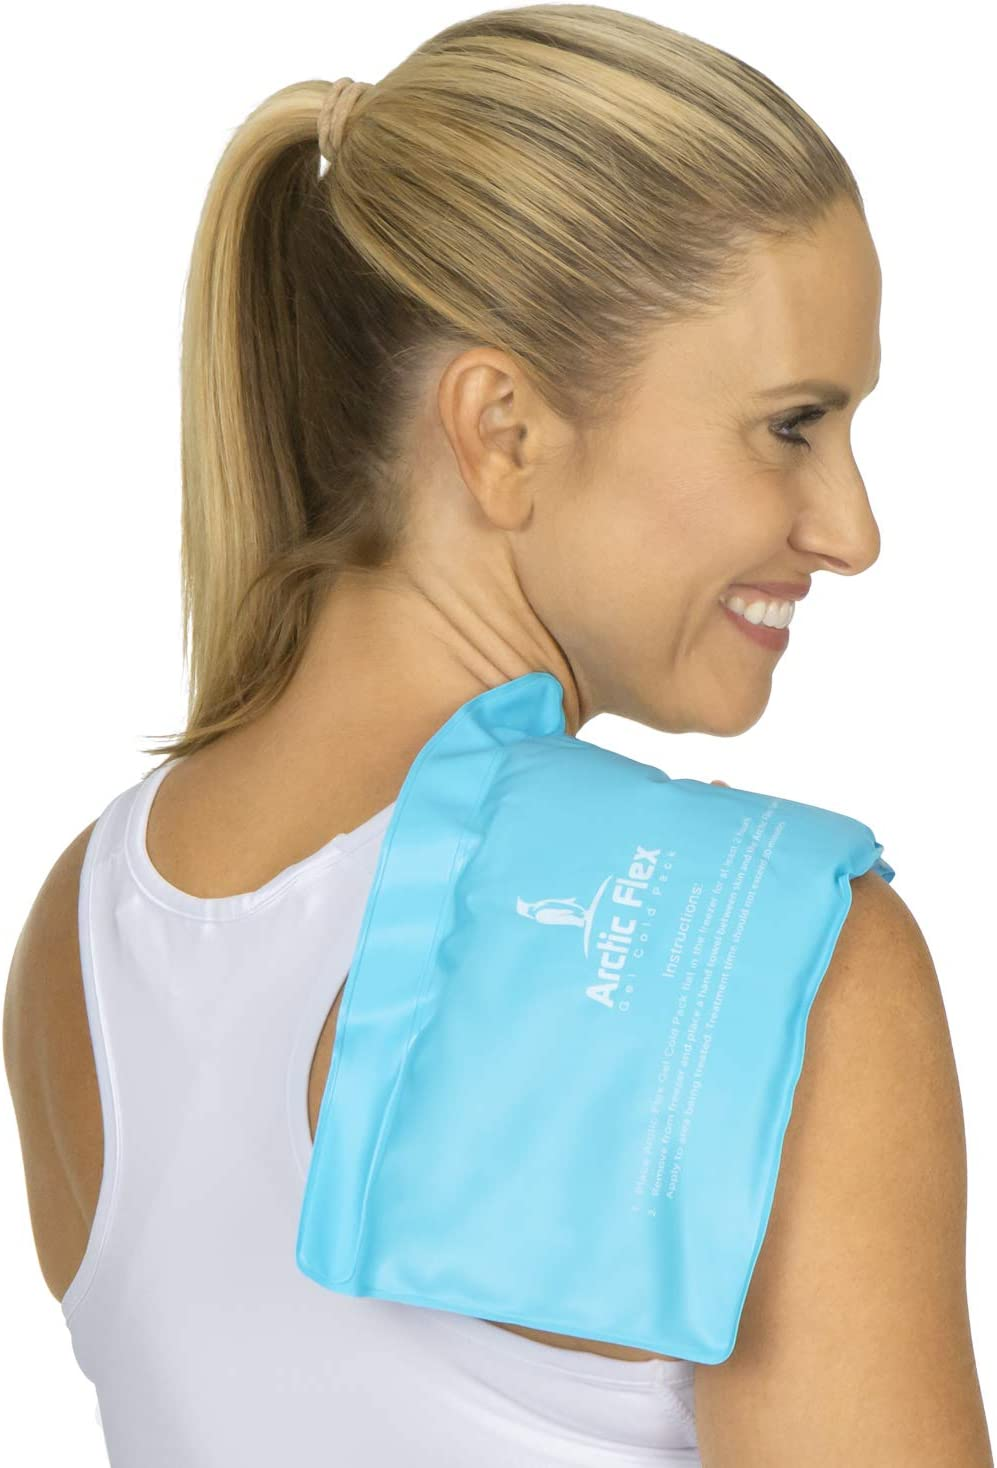 Arctic Flex Flexible Ice Pack - Reusable Large Hot and Cold Gel Therapy Bag - Medical Freezer Pad - Soft Heated Compress Wrap for Migraine, Knee, Neck, Shoulder, Back, Foot, Hand, Ankle Swelling